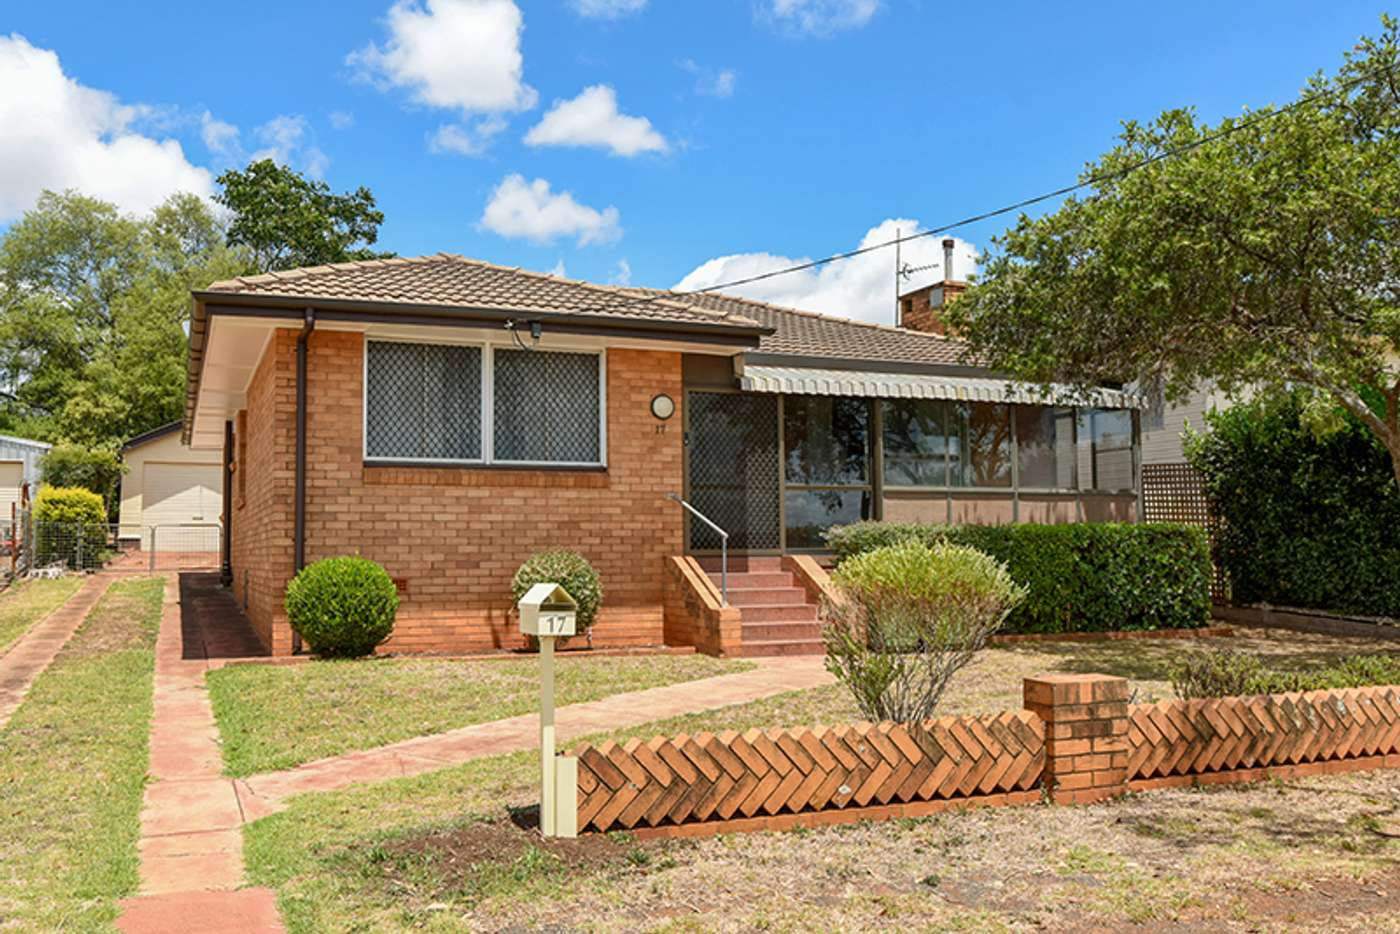 Main view of Homely house listing, 17 Lyndall Street, Harristown QLD 4350